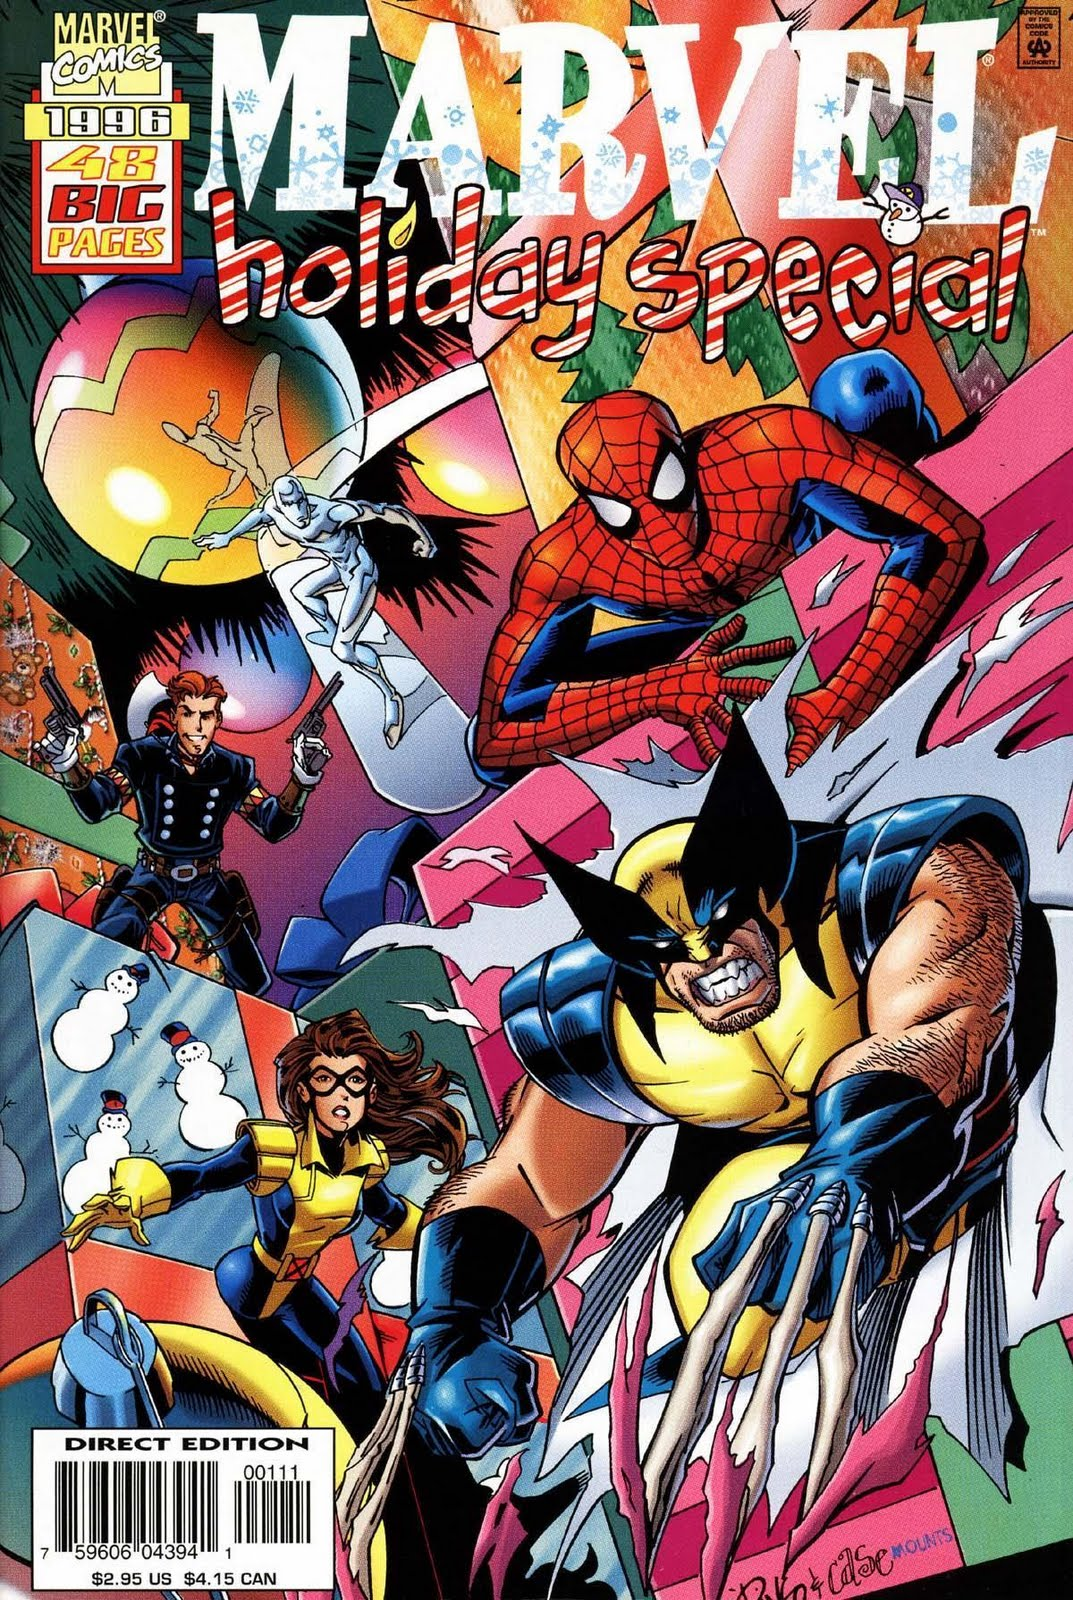 Marvel Christmas.To Have A Curse Marvel Christmas Special 1996 Review